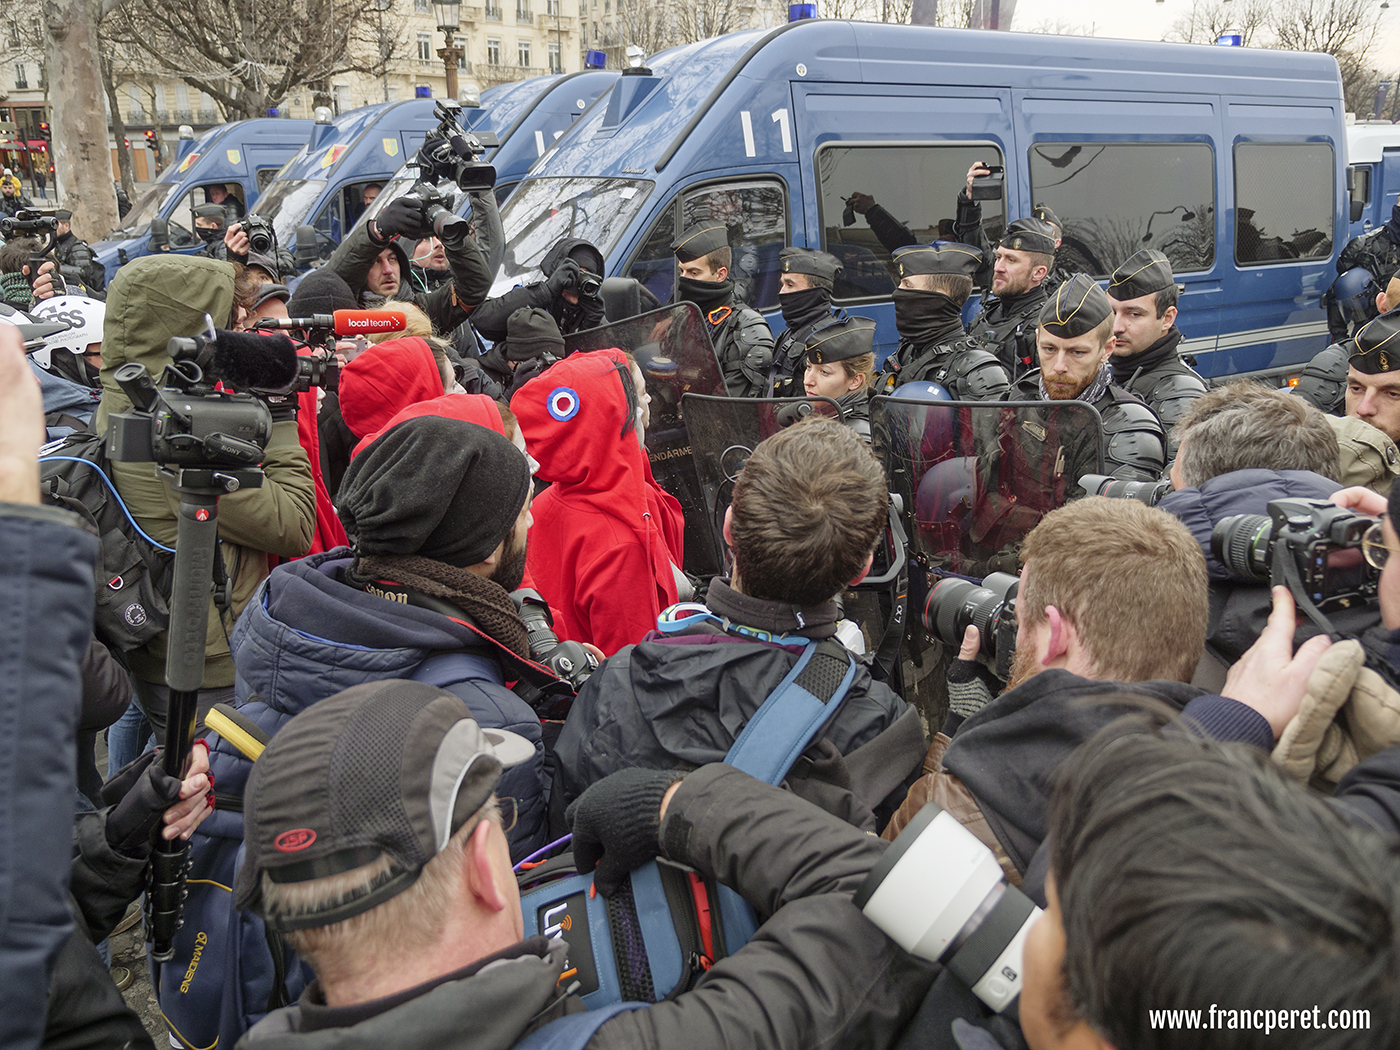 A huge number of journalists offer a wide range of pictures and video on the net concerning this series of protest